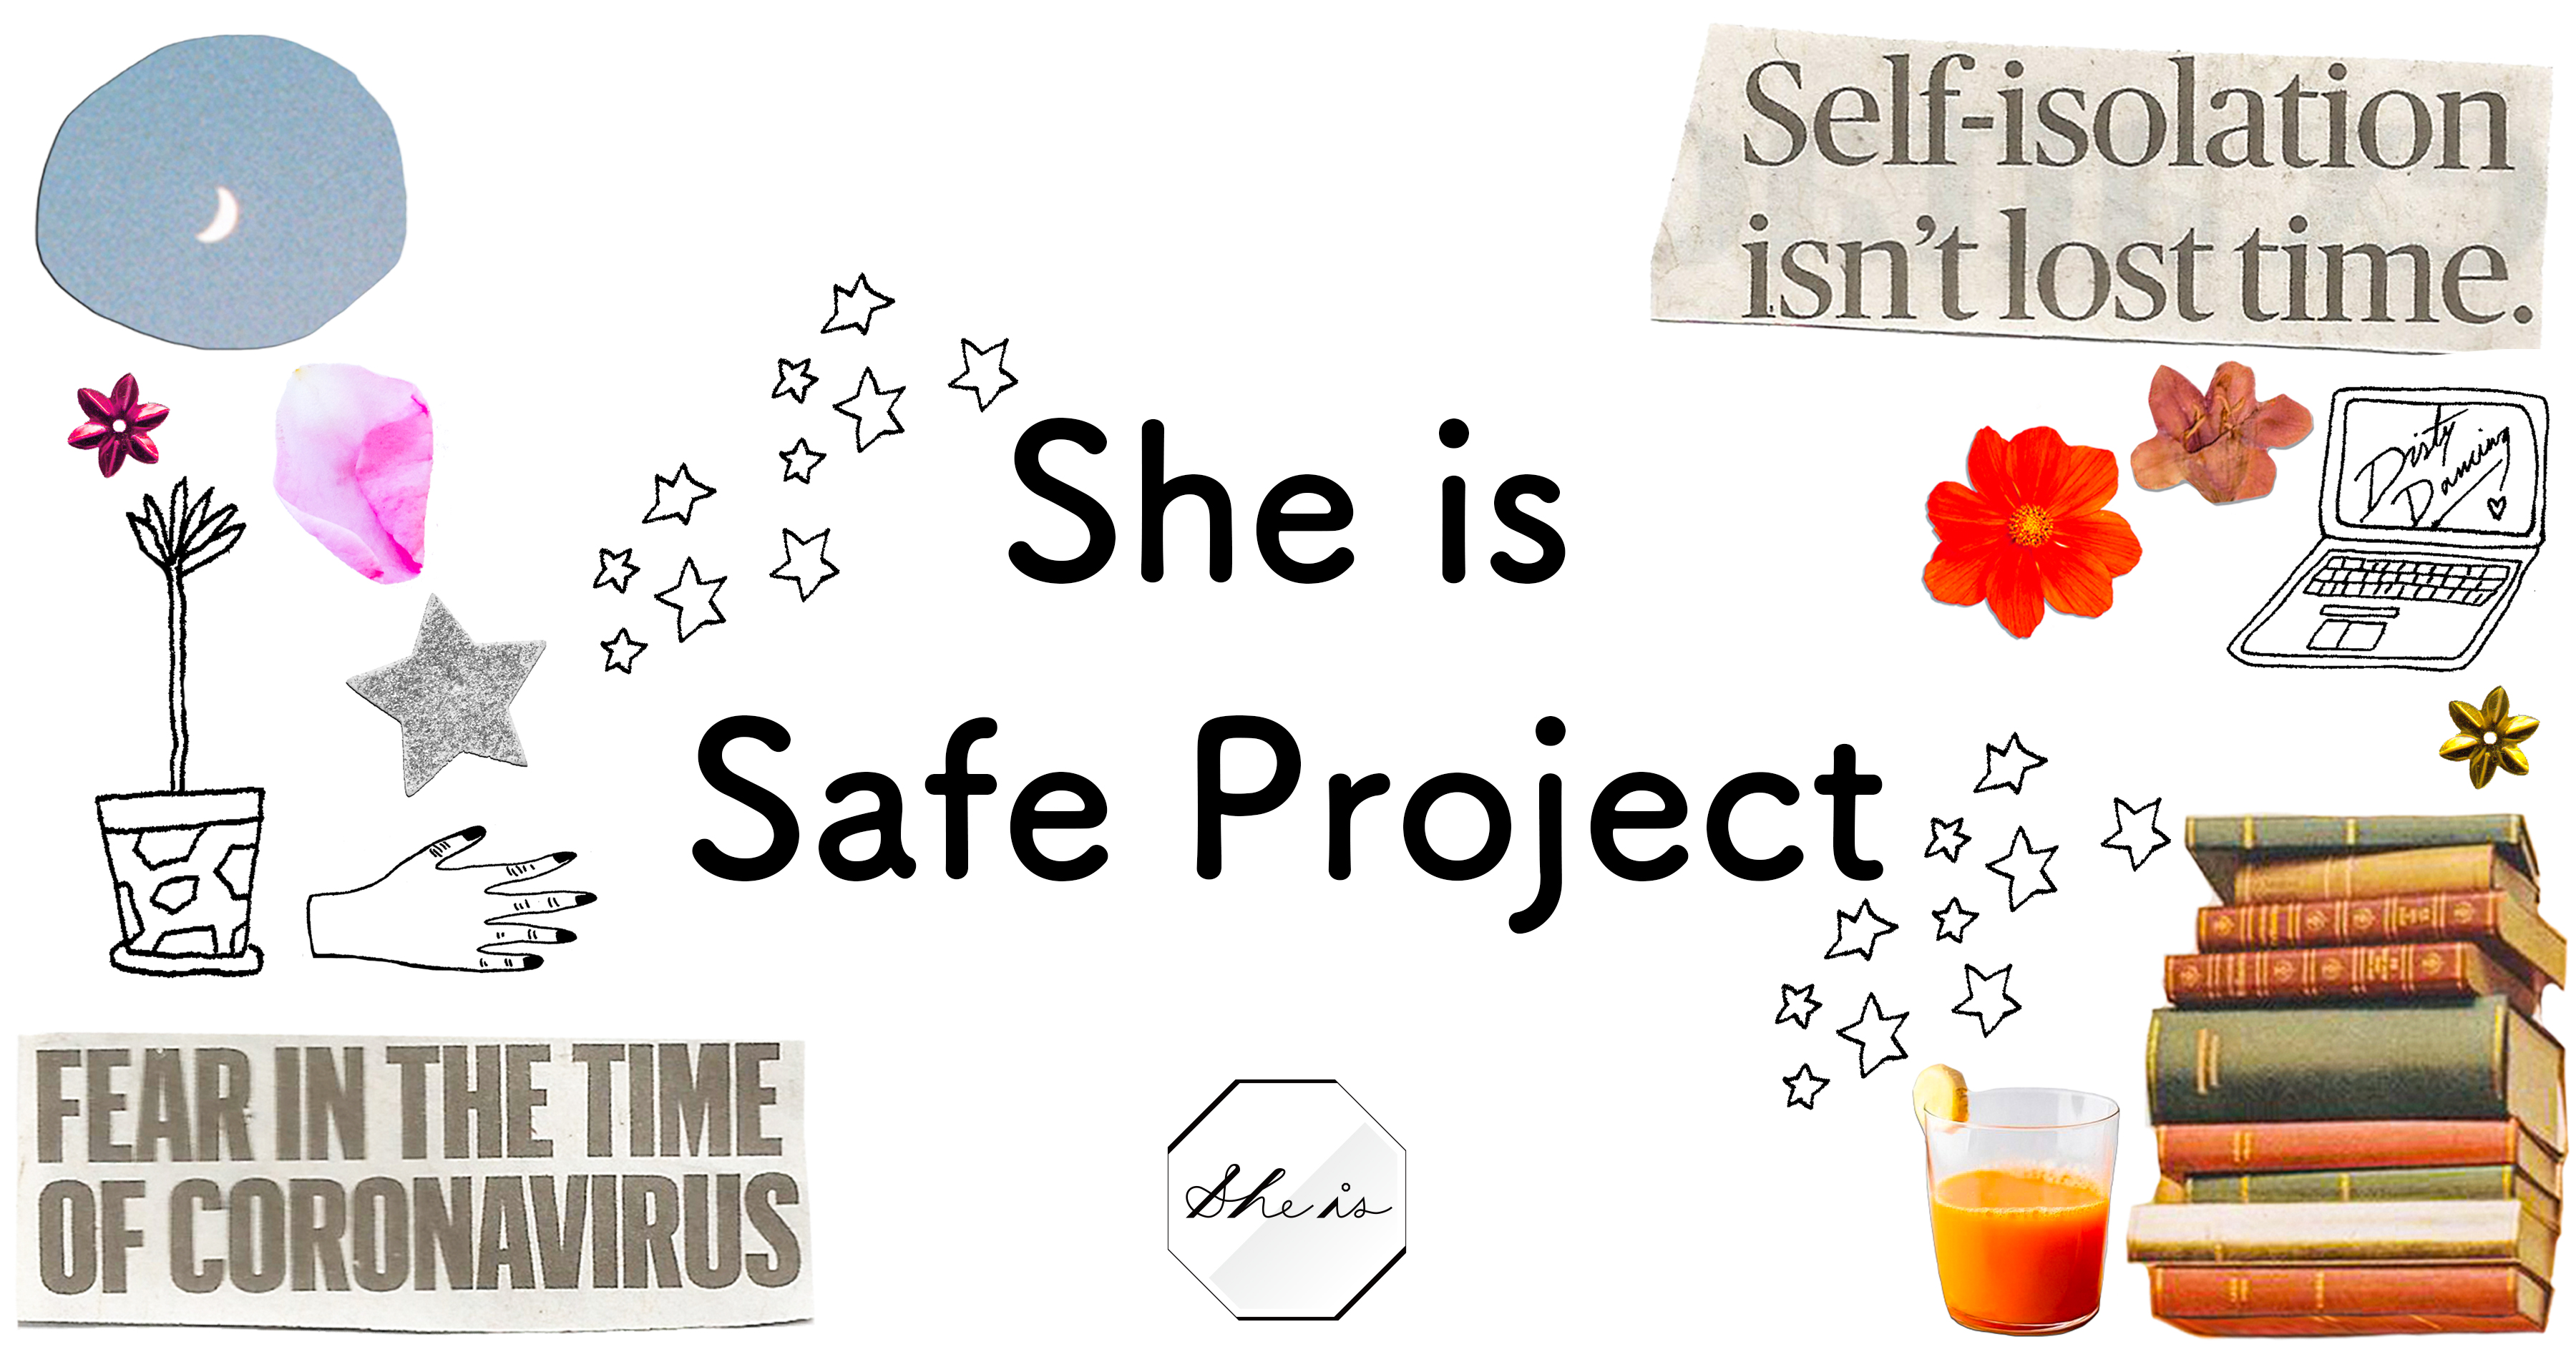 sheissafeproject